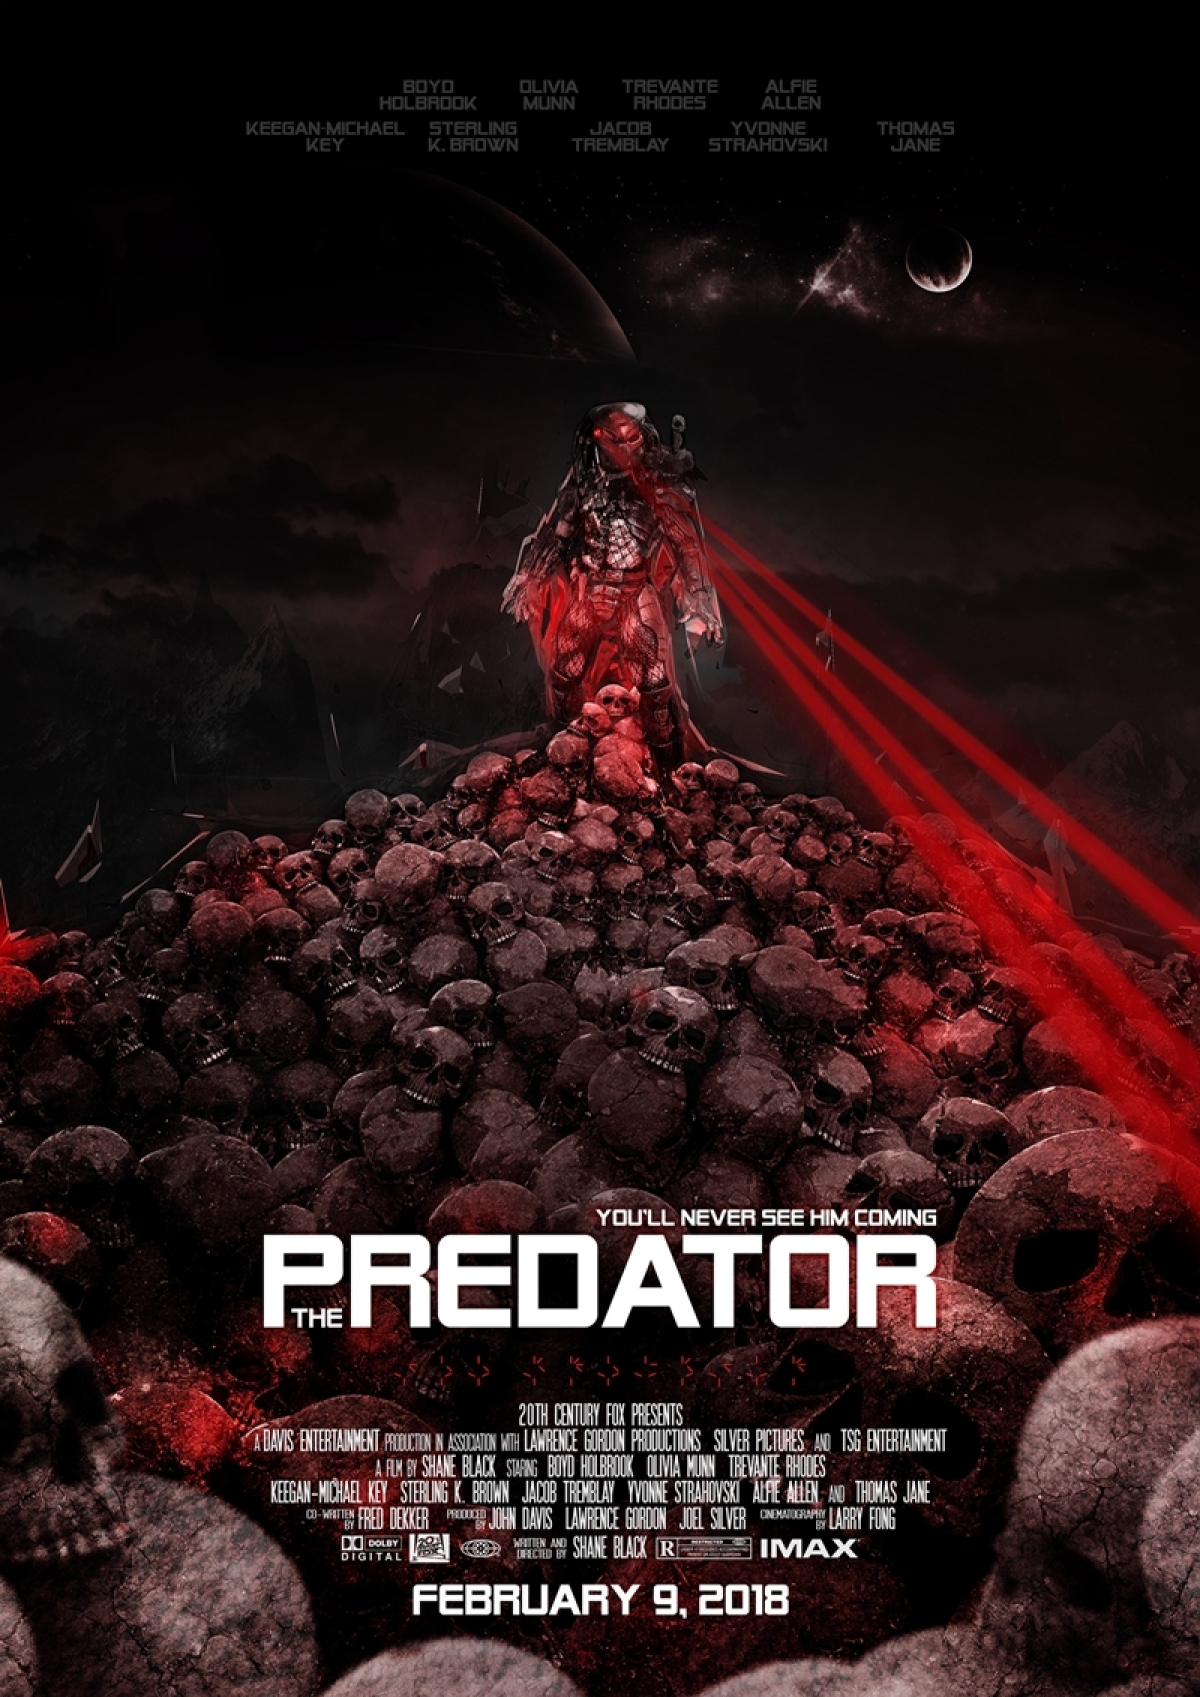 Watch! The Predator 2018 trailer: It's not what you think